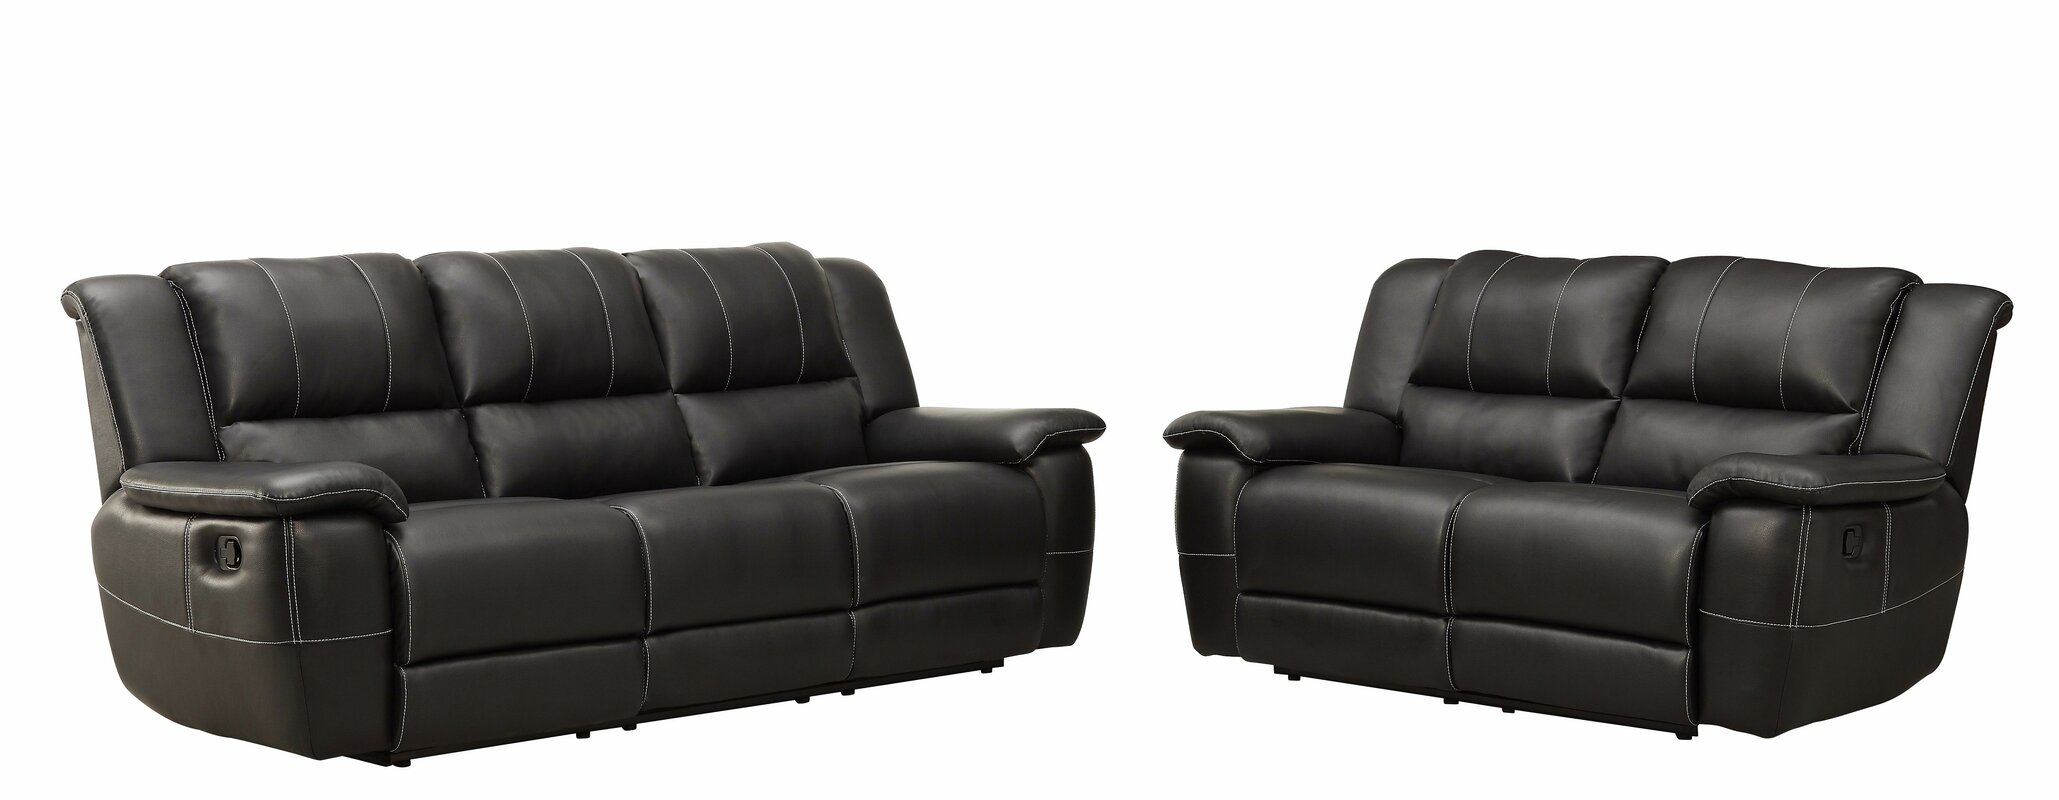 ideas room loveseat living recliner sofa amazing with double reclining additional